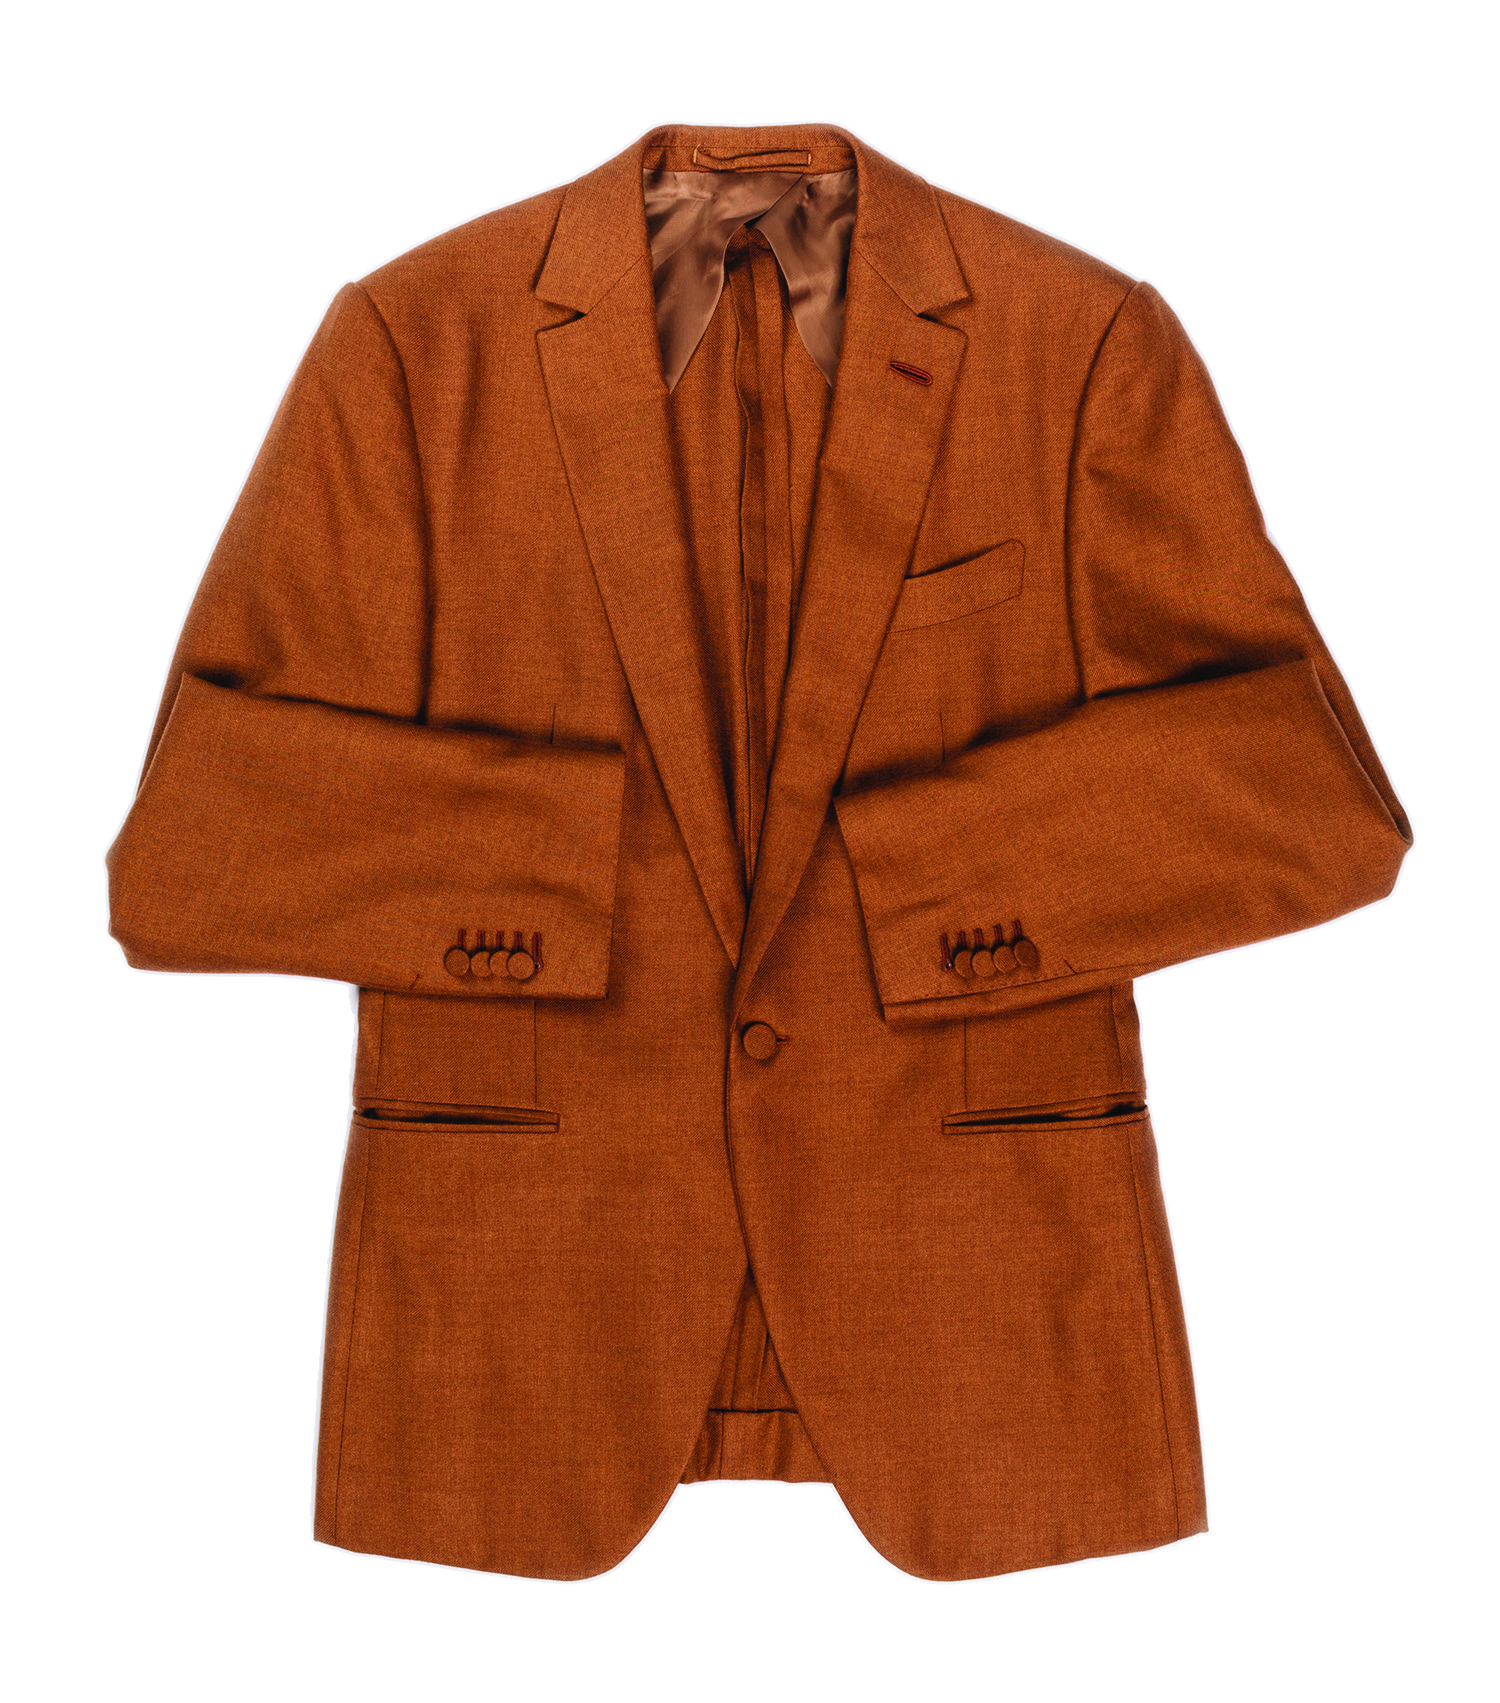 Soft but lightweight evening jacket in silk and camel hair blend   This luxurious must-have will see you through the holiday season and special occasions. $4875.00